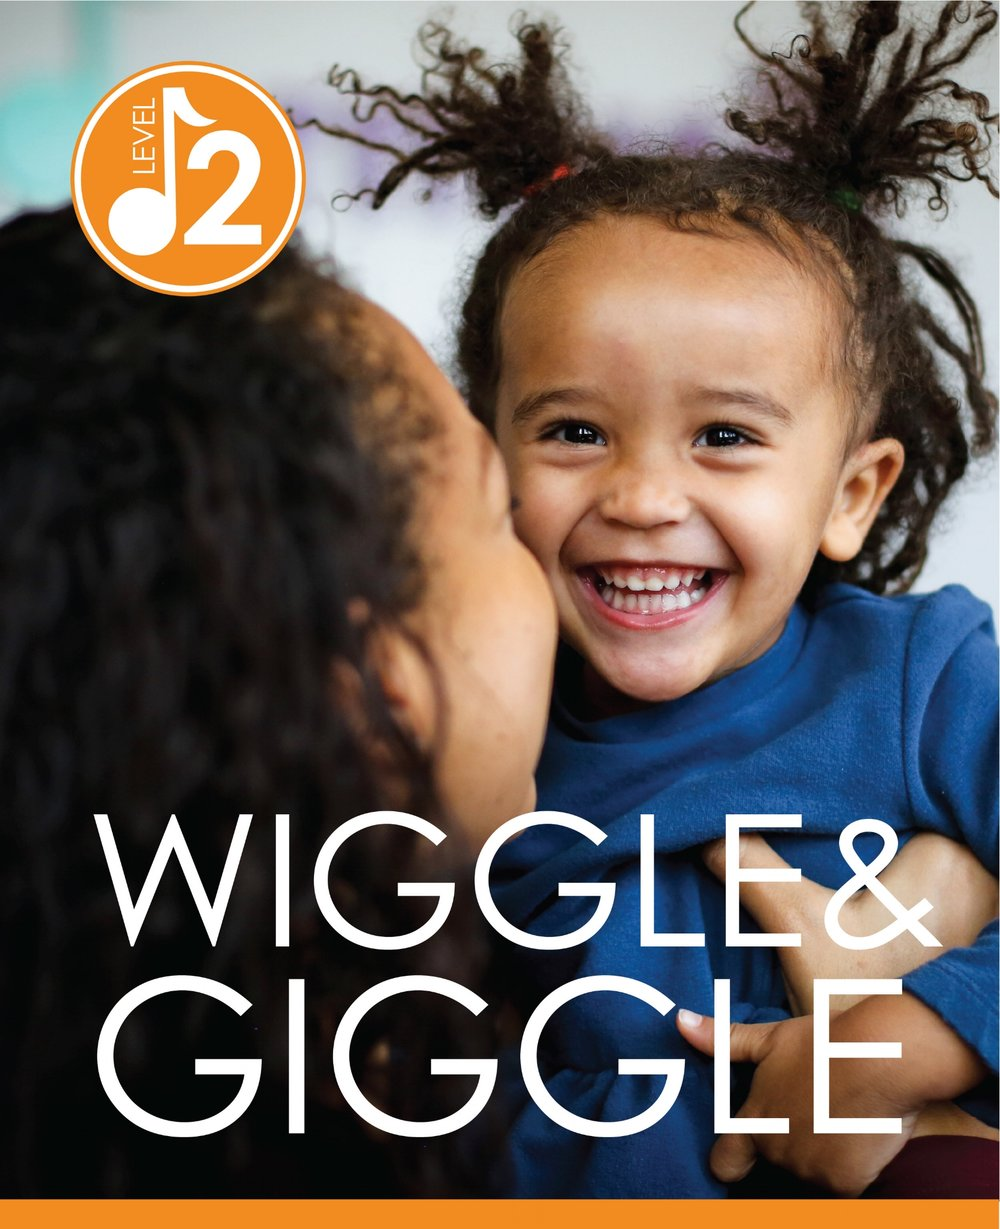 Ages 18mo - 3yrs - It's never too early to explore creativity! Music, movement, and plenty of toddler-style energy encourage social-emotional growth and build early pre-literacy and number skills.